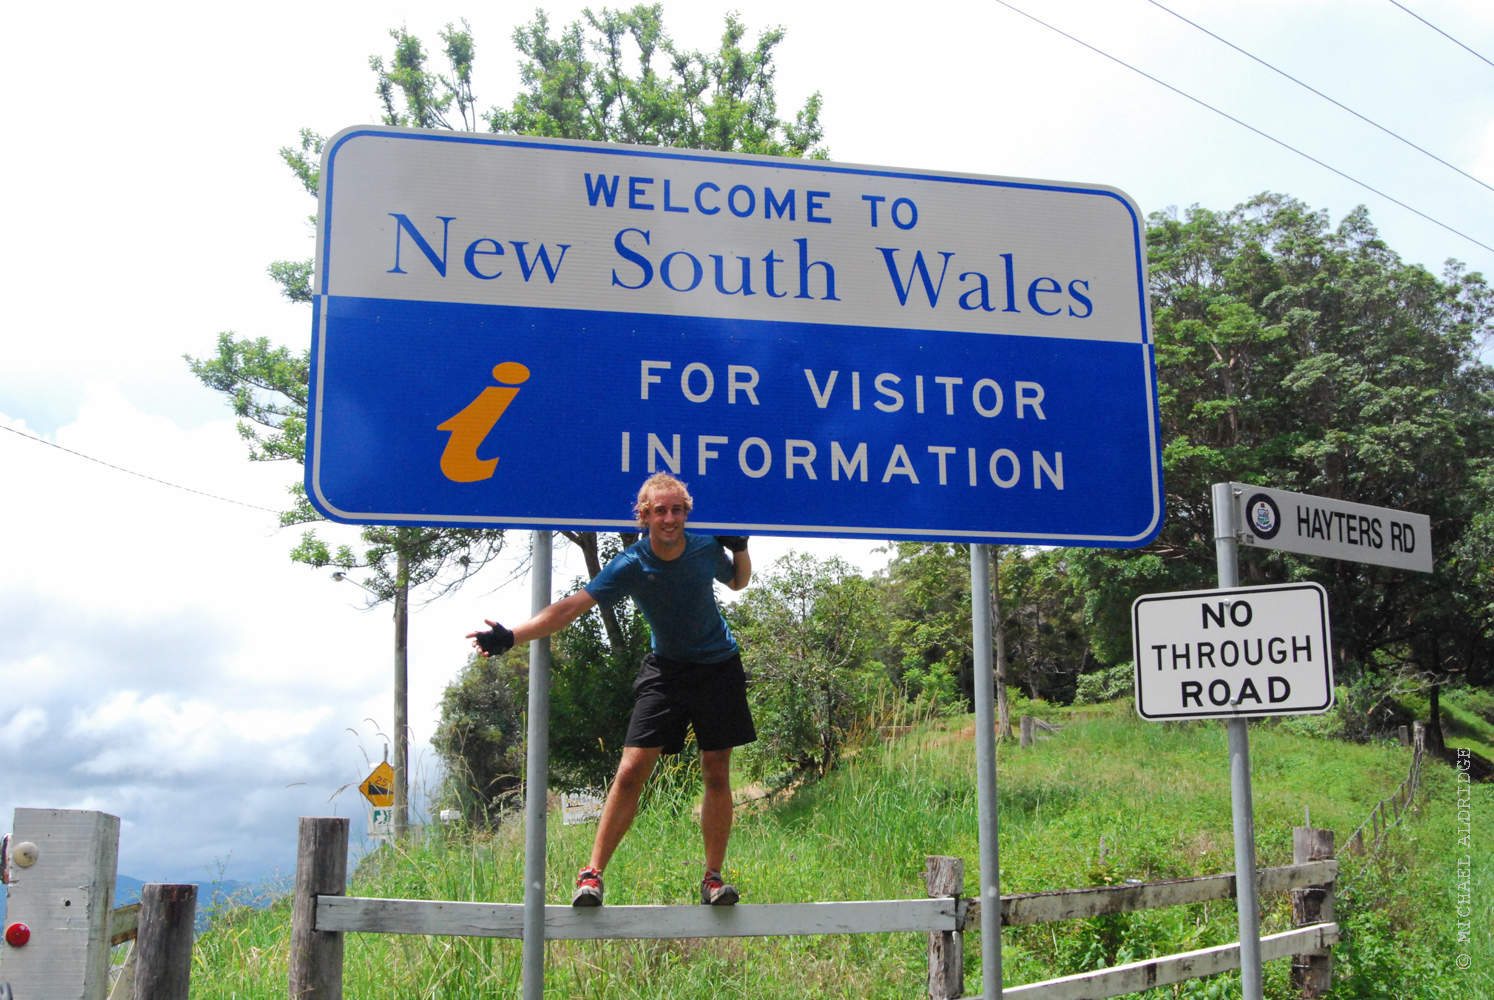 Crossing the New South Wales border